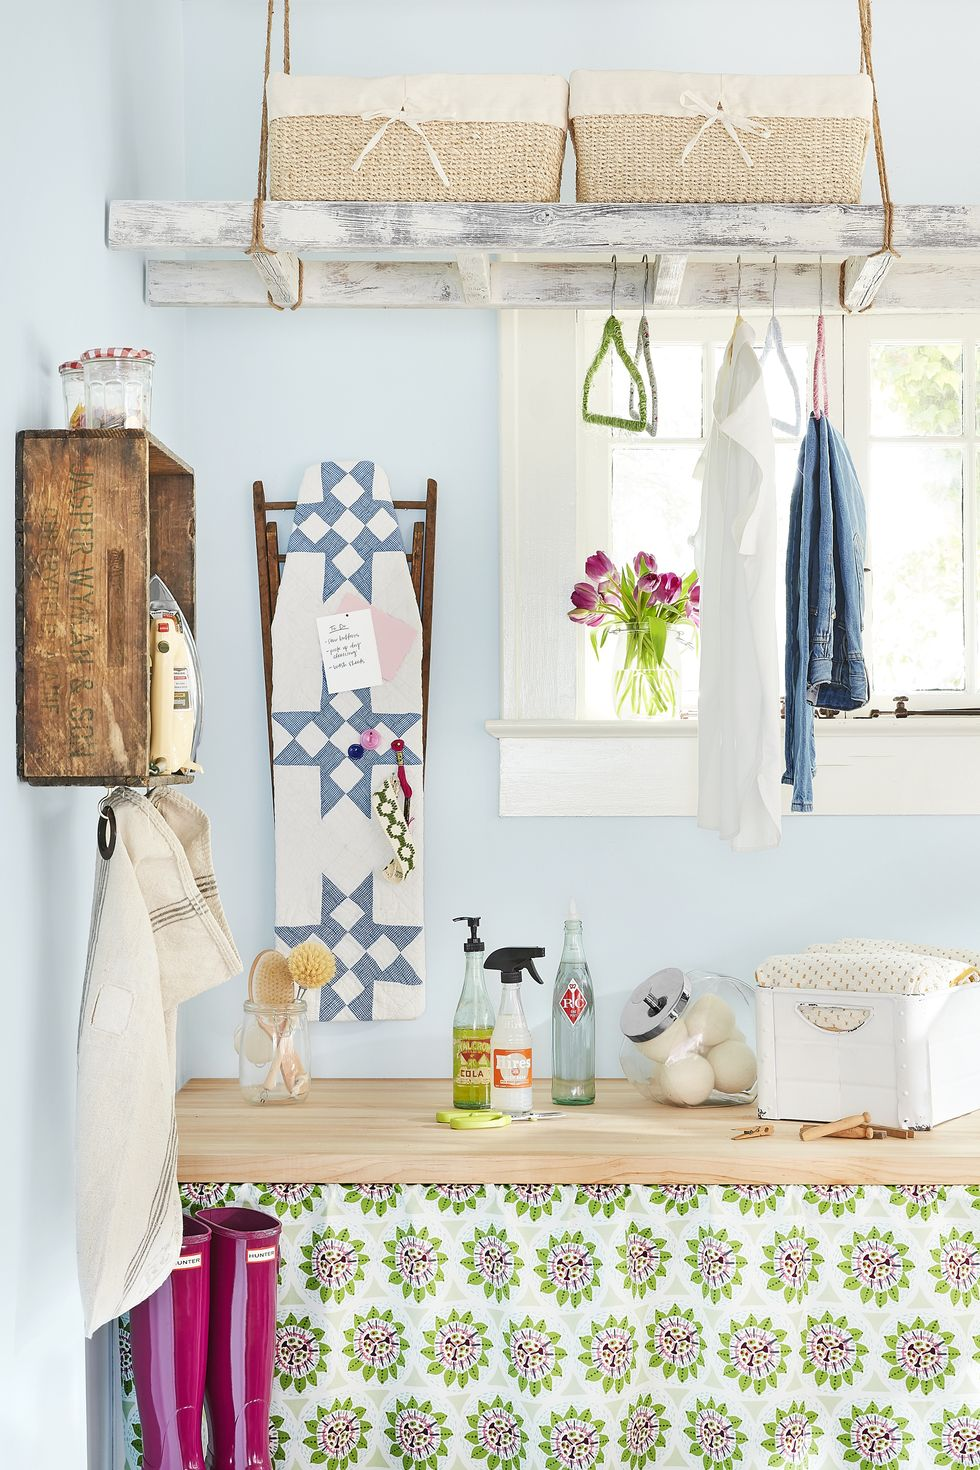 Make sure your laundry room is practical to keep the chore easy!